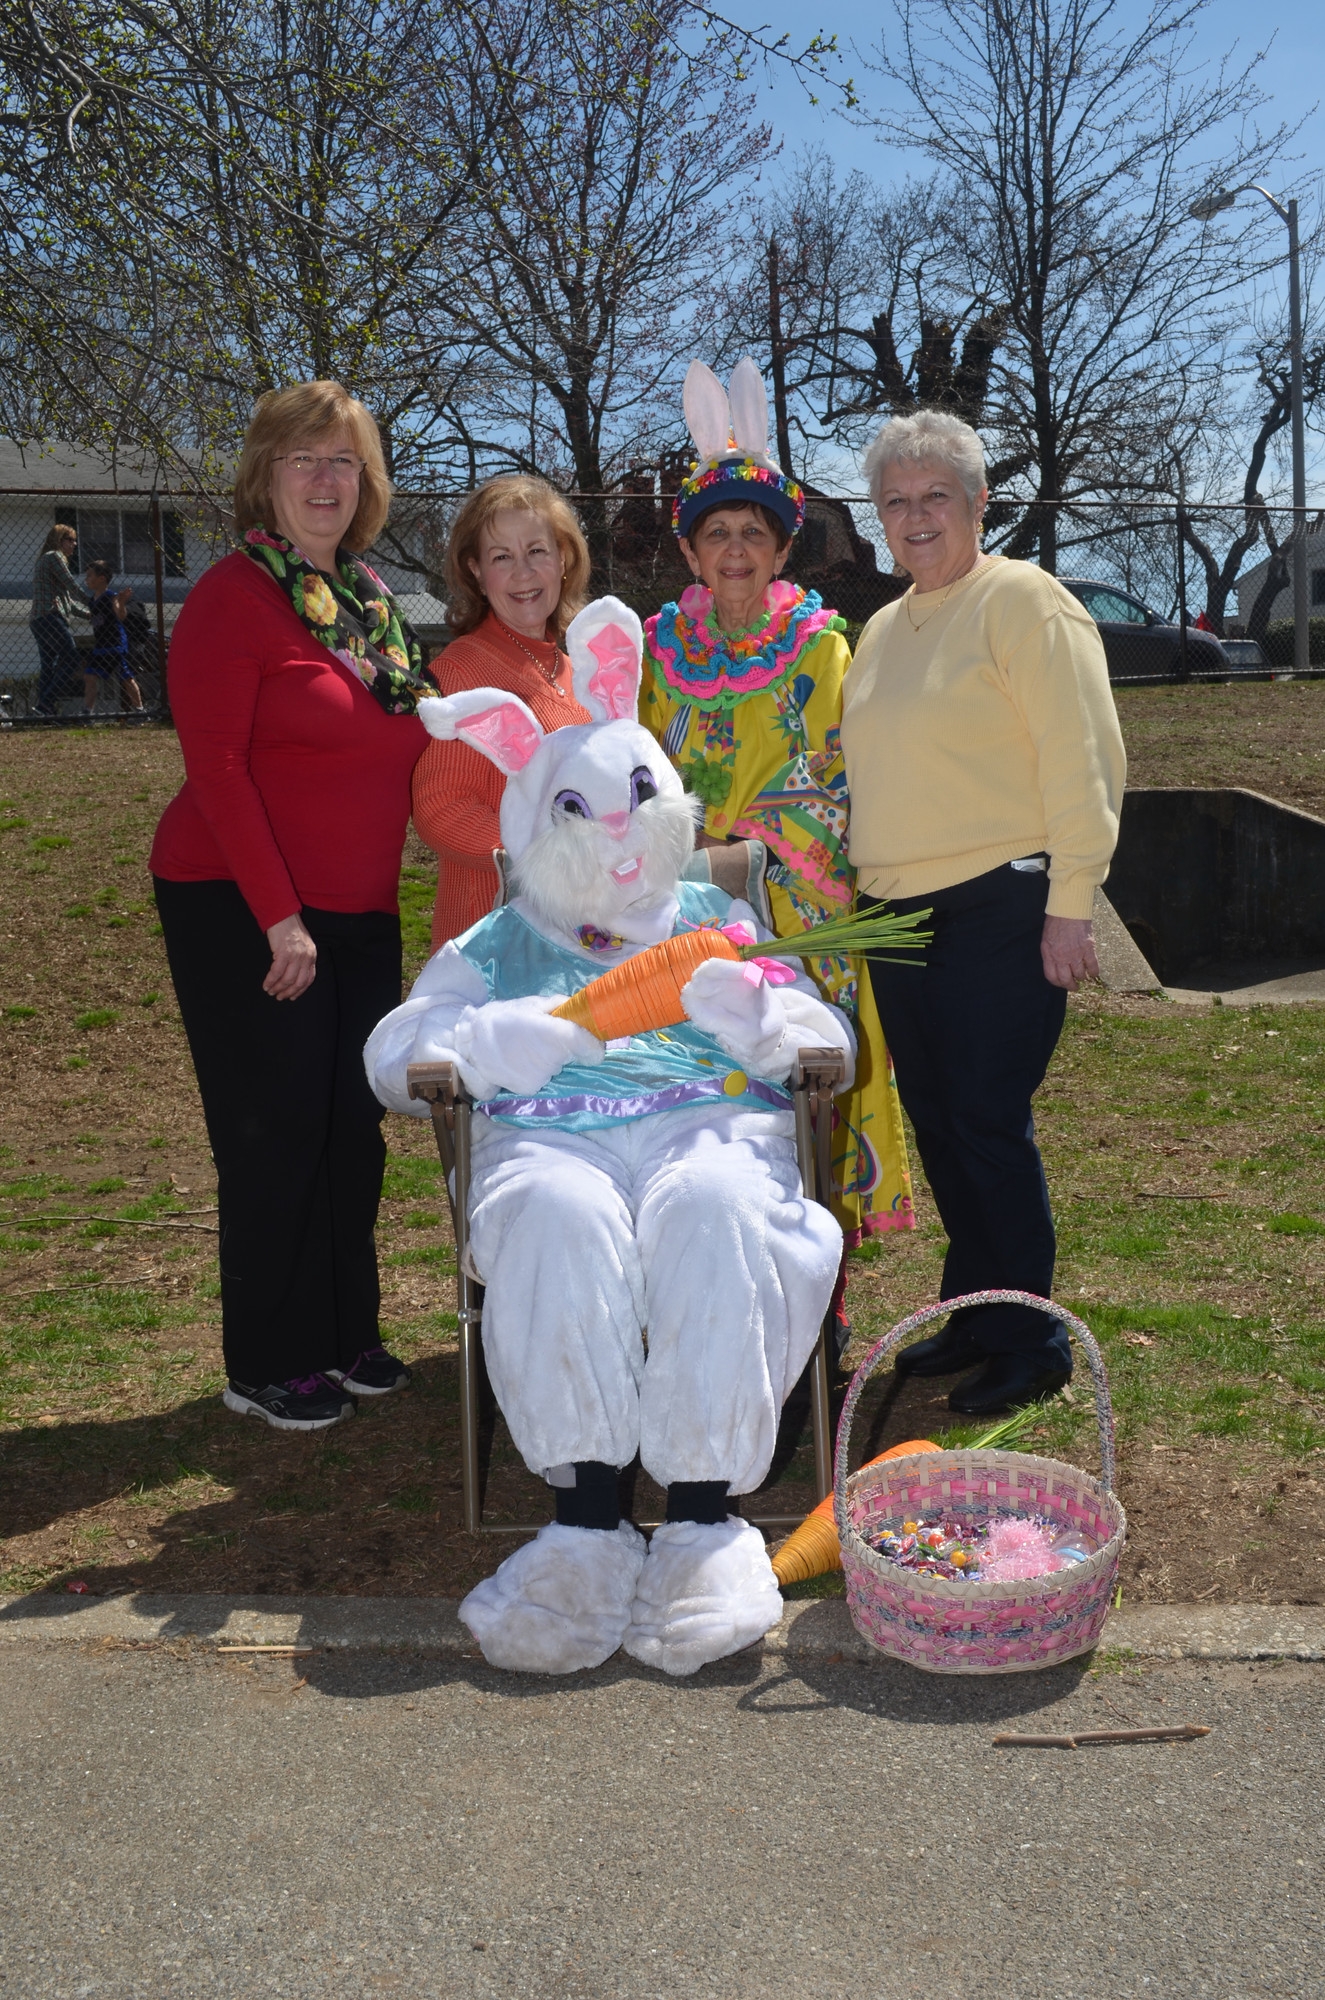 Claudia Borecky, Sharon Williams, Betty Tucker, Palma Fasano and the Easter Bunny played parts in organizing the Spring Eggstravaganza.